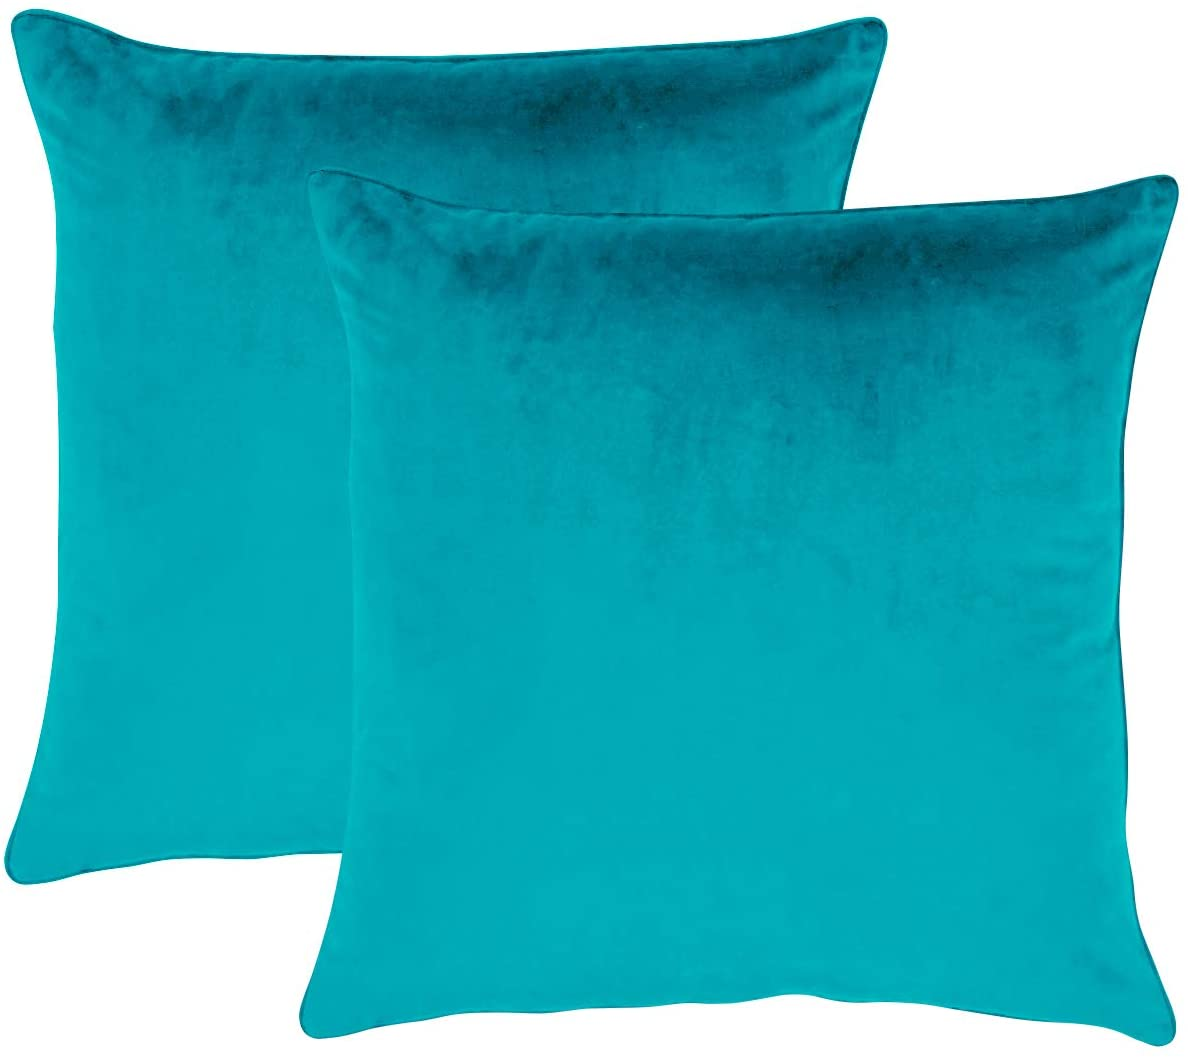 Essencea Velvet Throw Pillow/Cushion Covers Set of 2 Solid Color Decorative European Shams Soft Square Pillowcases with Hidden Zipper for Sofa   Bedroom   Living Room   Car (20 x 20 Inch, Turquoise)